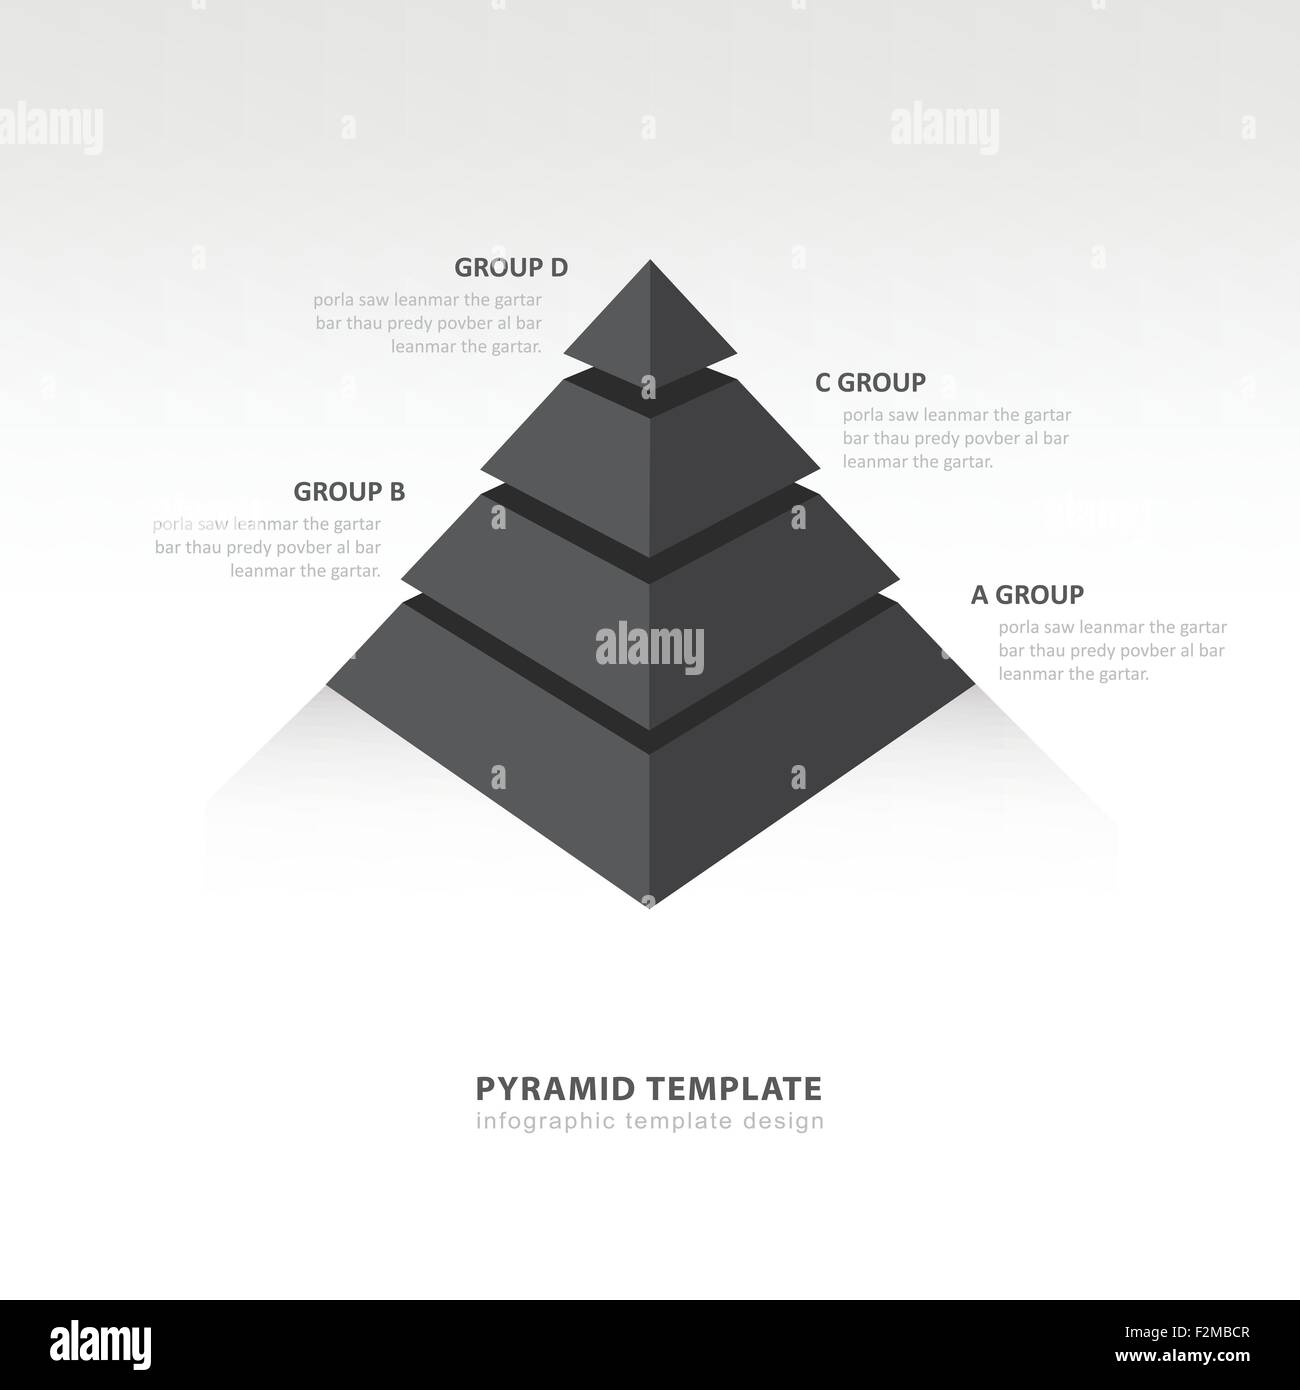 Ten Thousand Dollar Pyramid Template Choice Image - Template Design ...